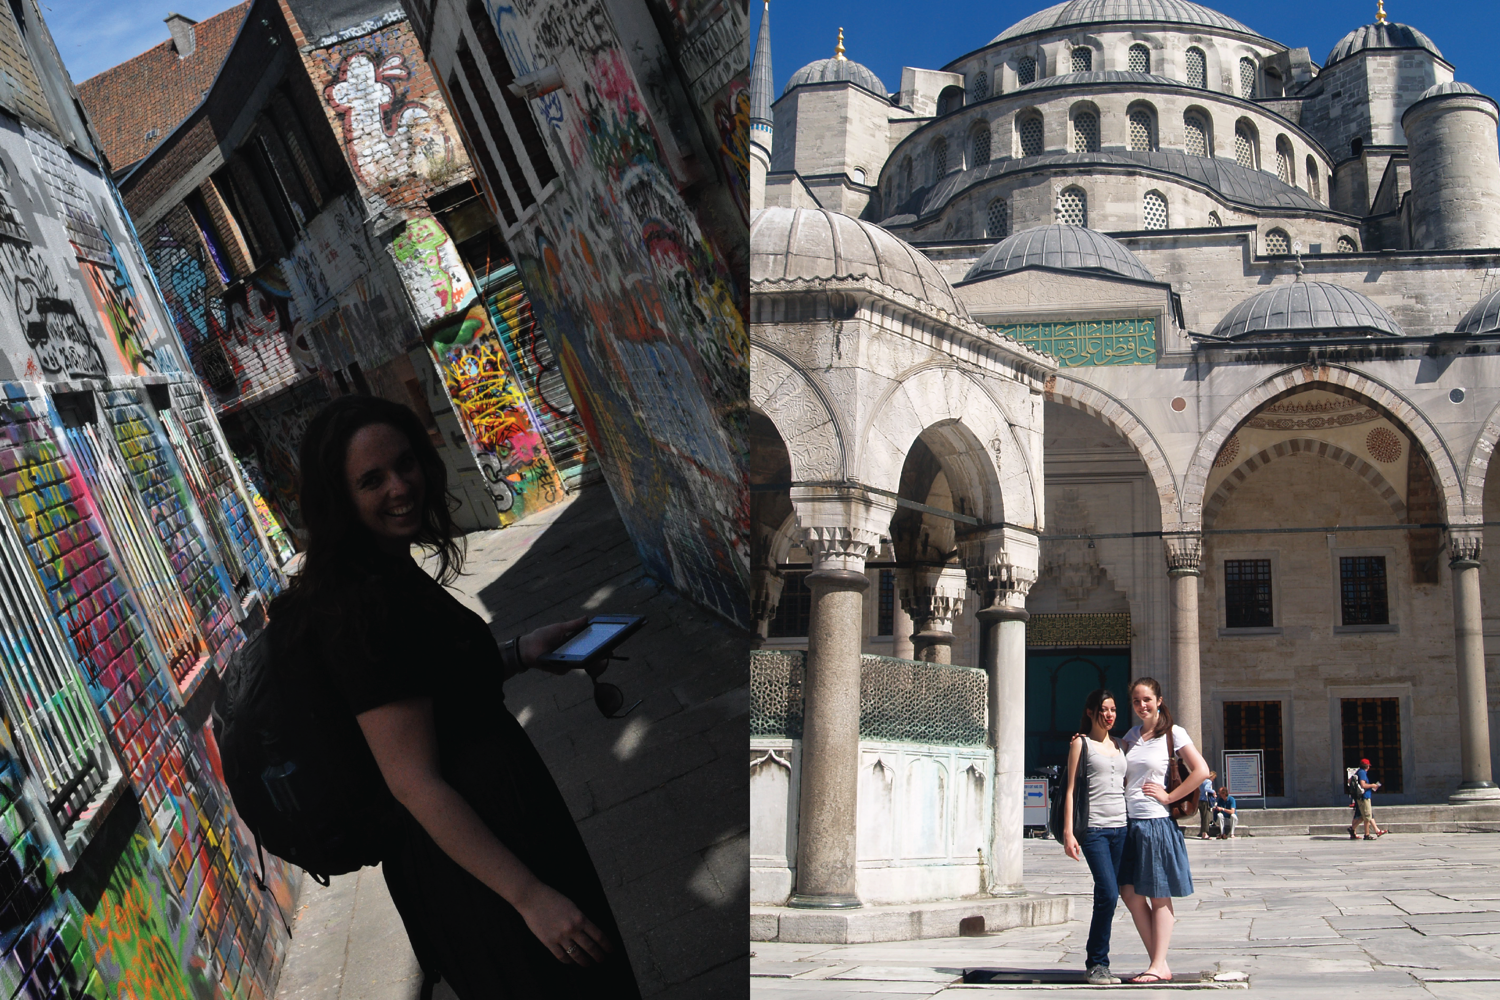 In Belgium in 2012, and in Istanbul in 2009.